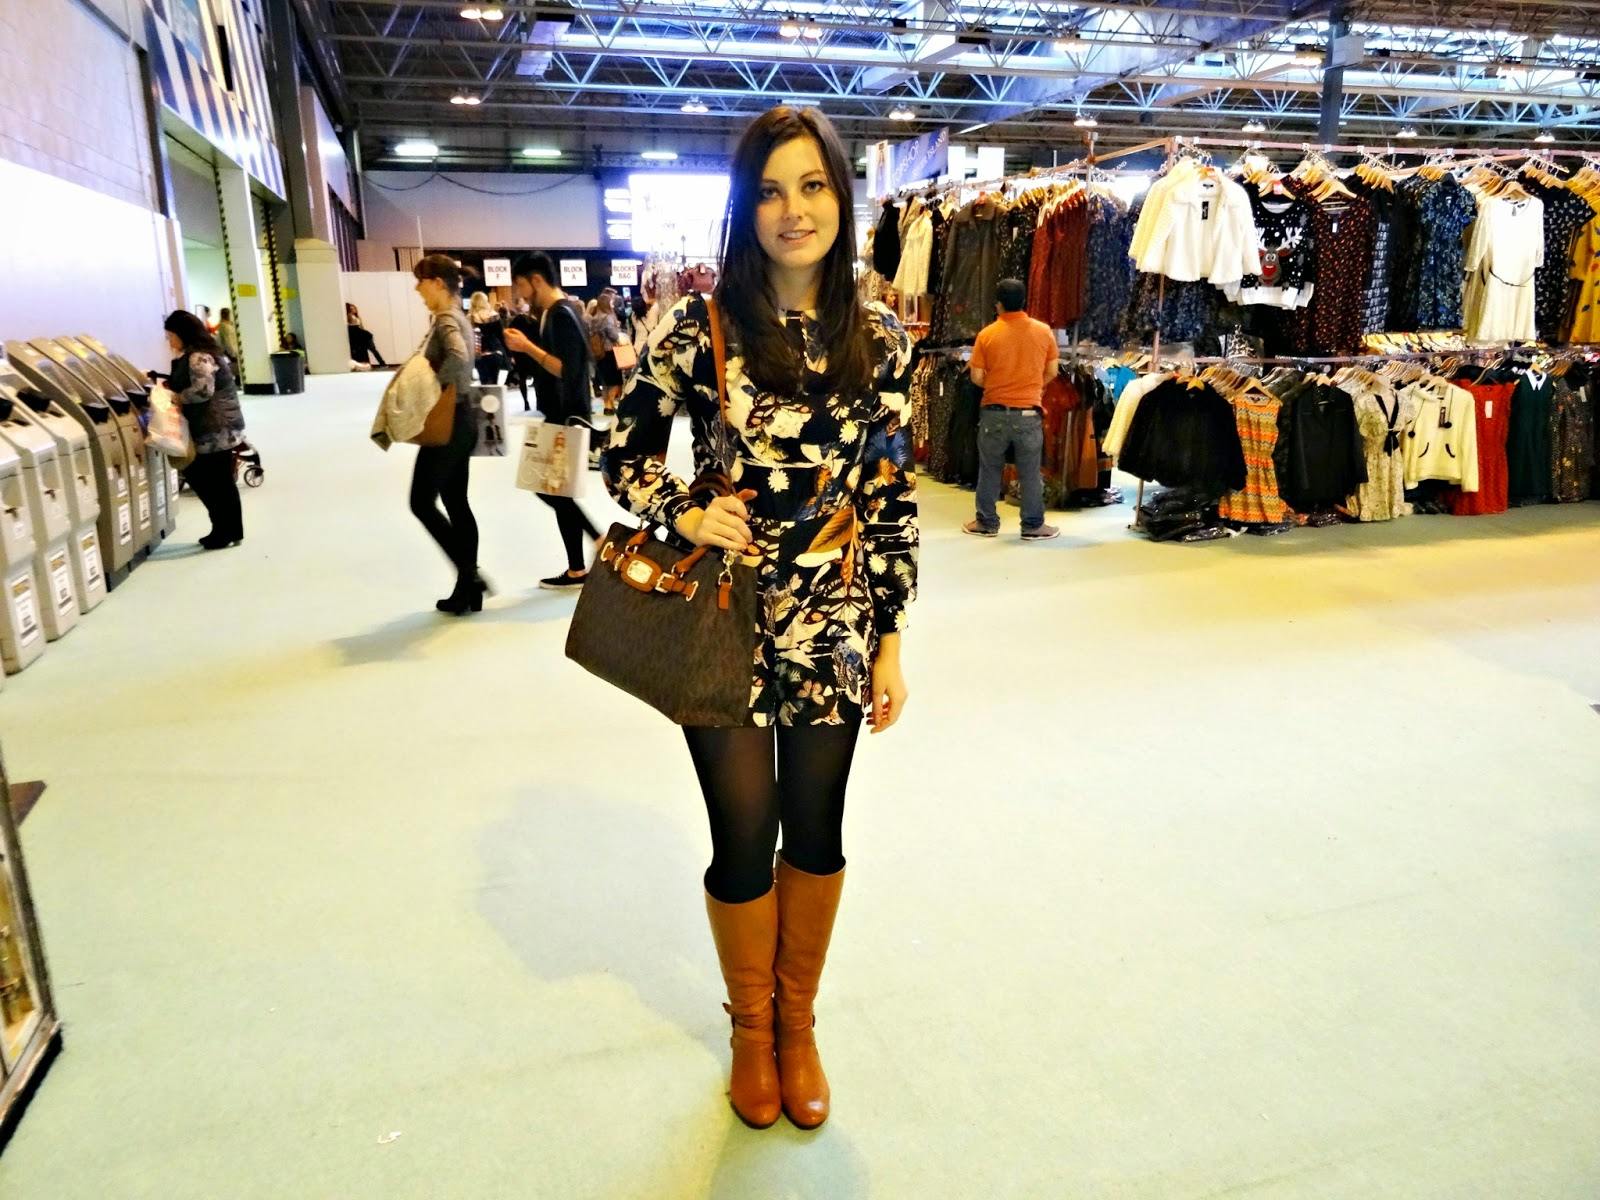 What to wear to the clothes show in birmingham?